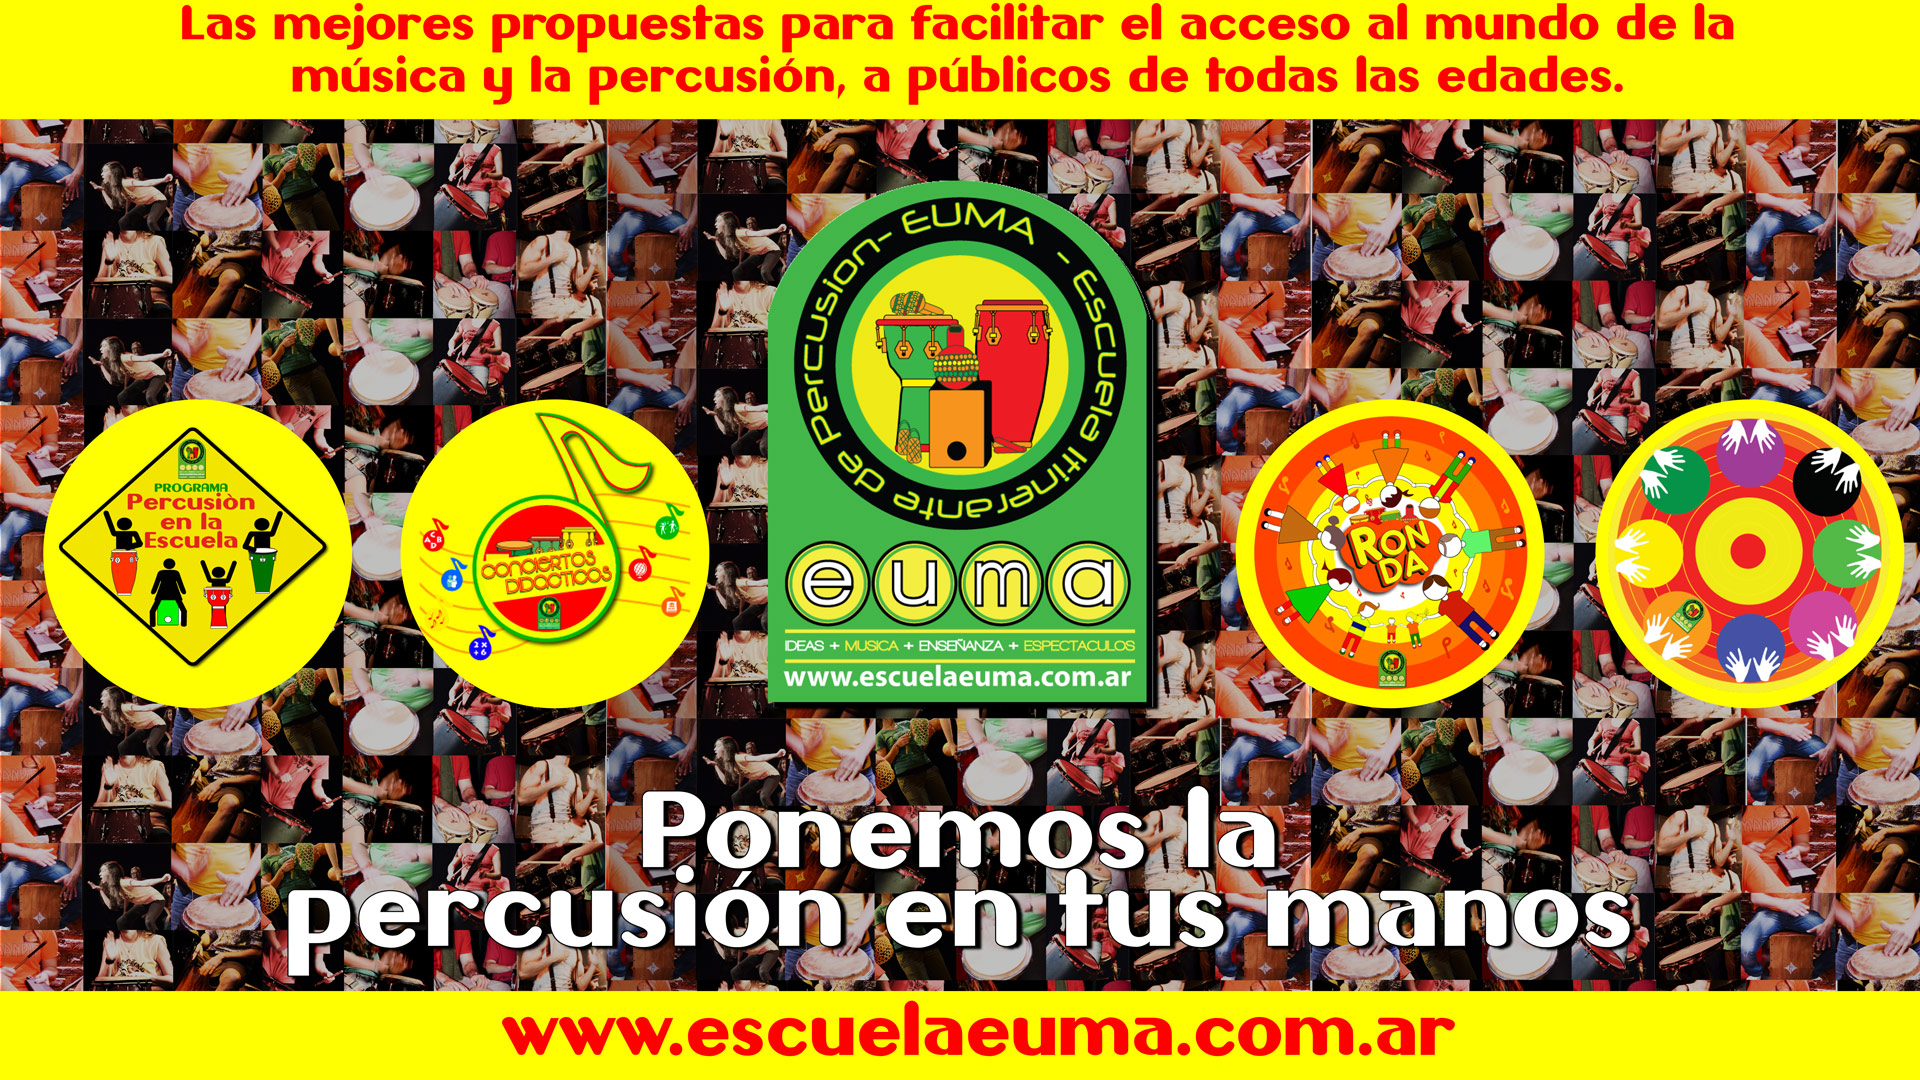 Escuela EUMA propuesta Educativas y Recreativas